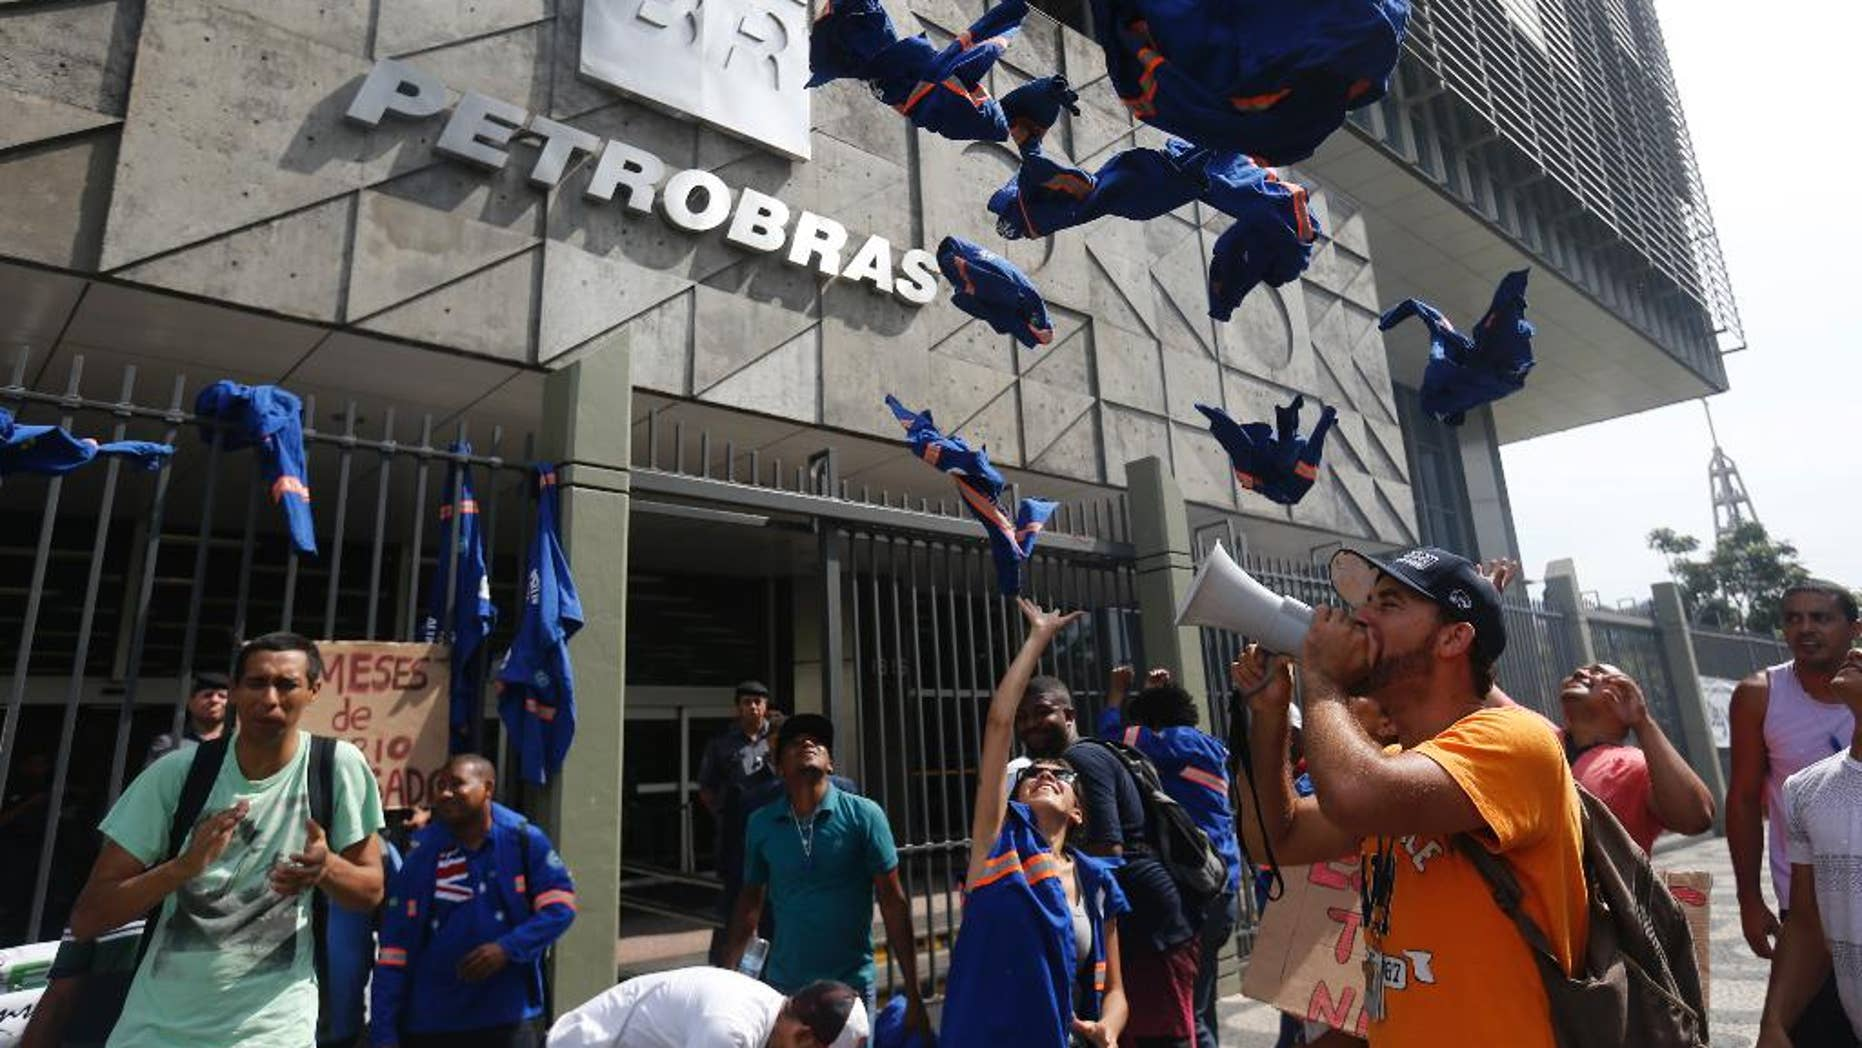 FILE - In this Feb. 4, 2015 file photo, workers whose company is contracted by Brazil's government-run oil company Petrobras throw their work uniforms at Petrobras headquarters to protest corruption, in Rio de Janeiro, Brazil. Petrobras was accused by federal prosecutors of the biggest corruption scheme in Brazil's history in 2014, in allegations that at least $2 billion in bribes were paid out over about a decade. Several top officers resigned and even pulled leading politicians into ongoing investigations. (AP Photo/Silvia Izquierdo, File)